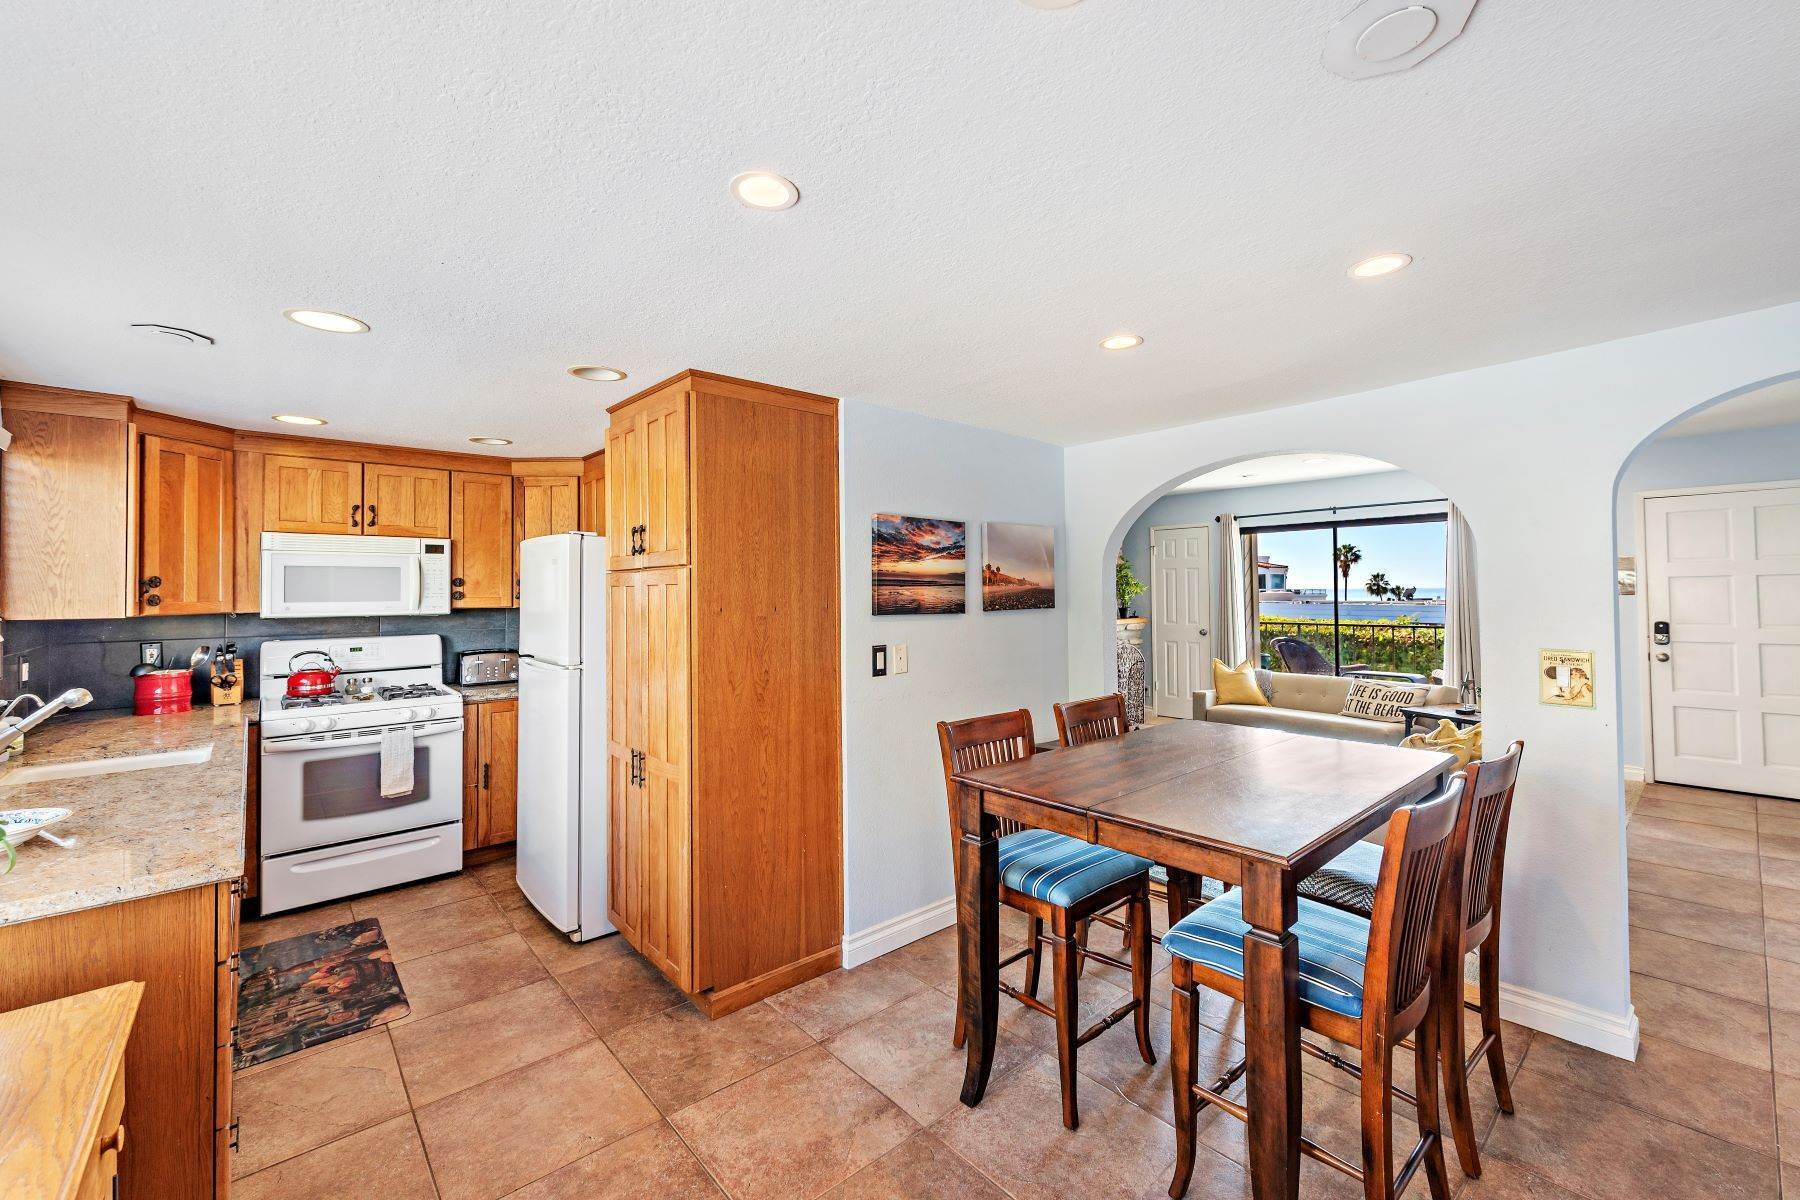 14. Condominiums for Sale at 321 Acebo Lane Unit #C, San Clemente, CA 92672 321 Acebo Lane, Unit #C San Clemente, California 92672 United States